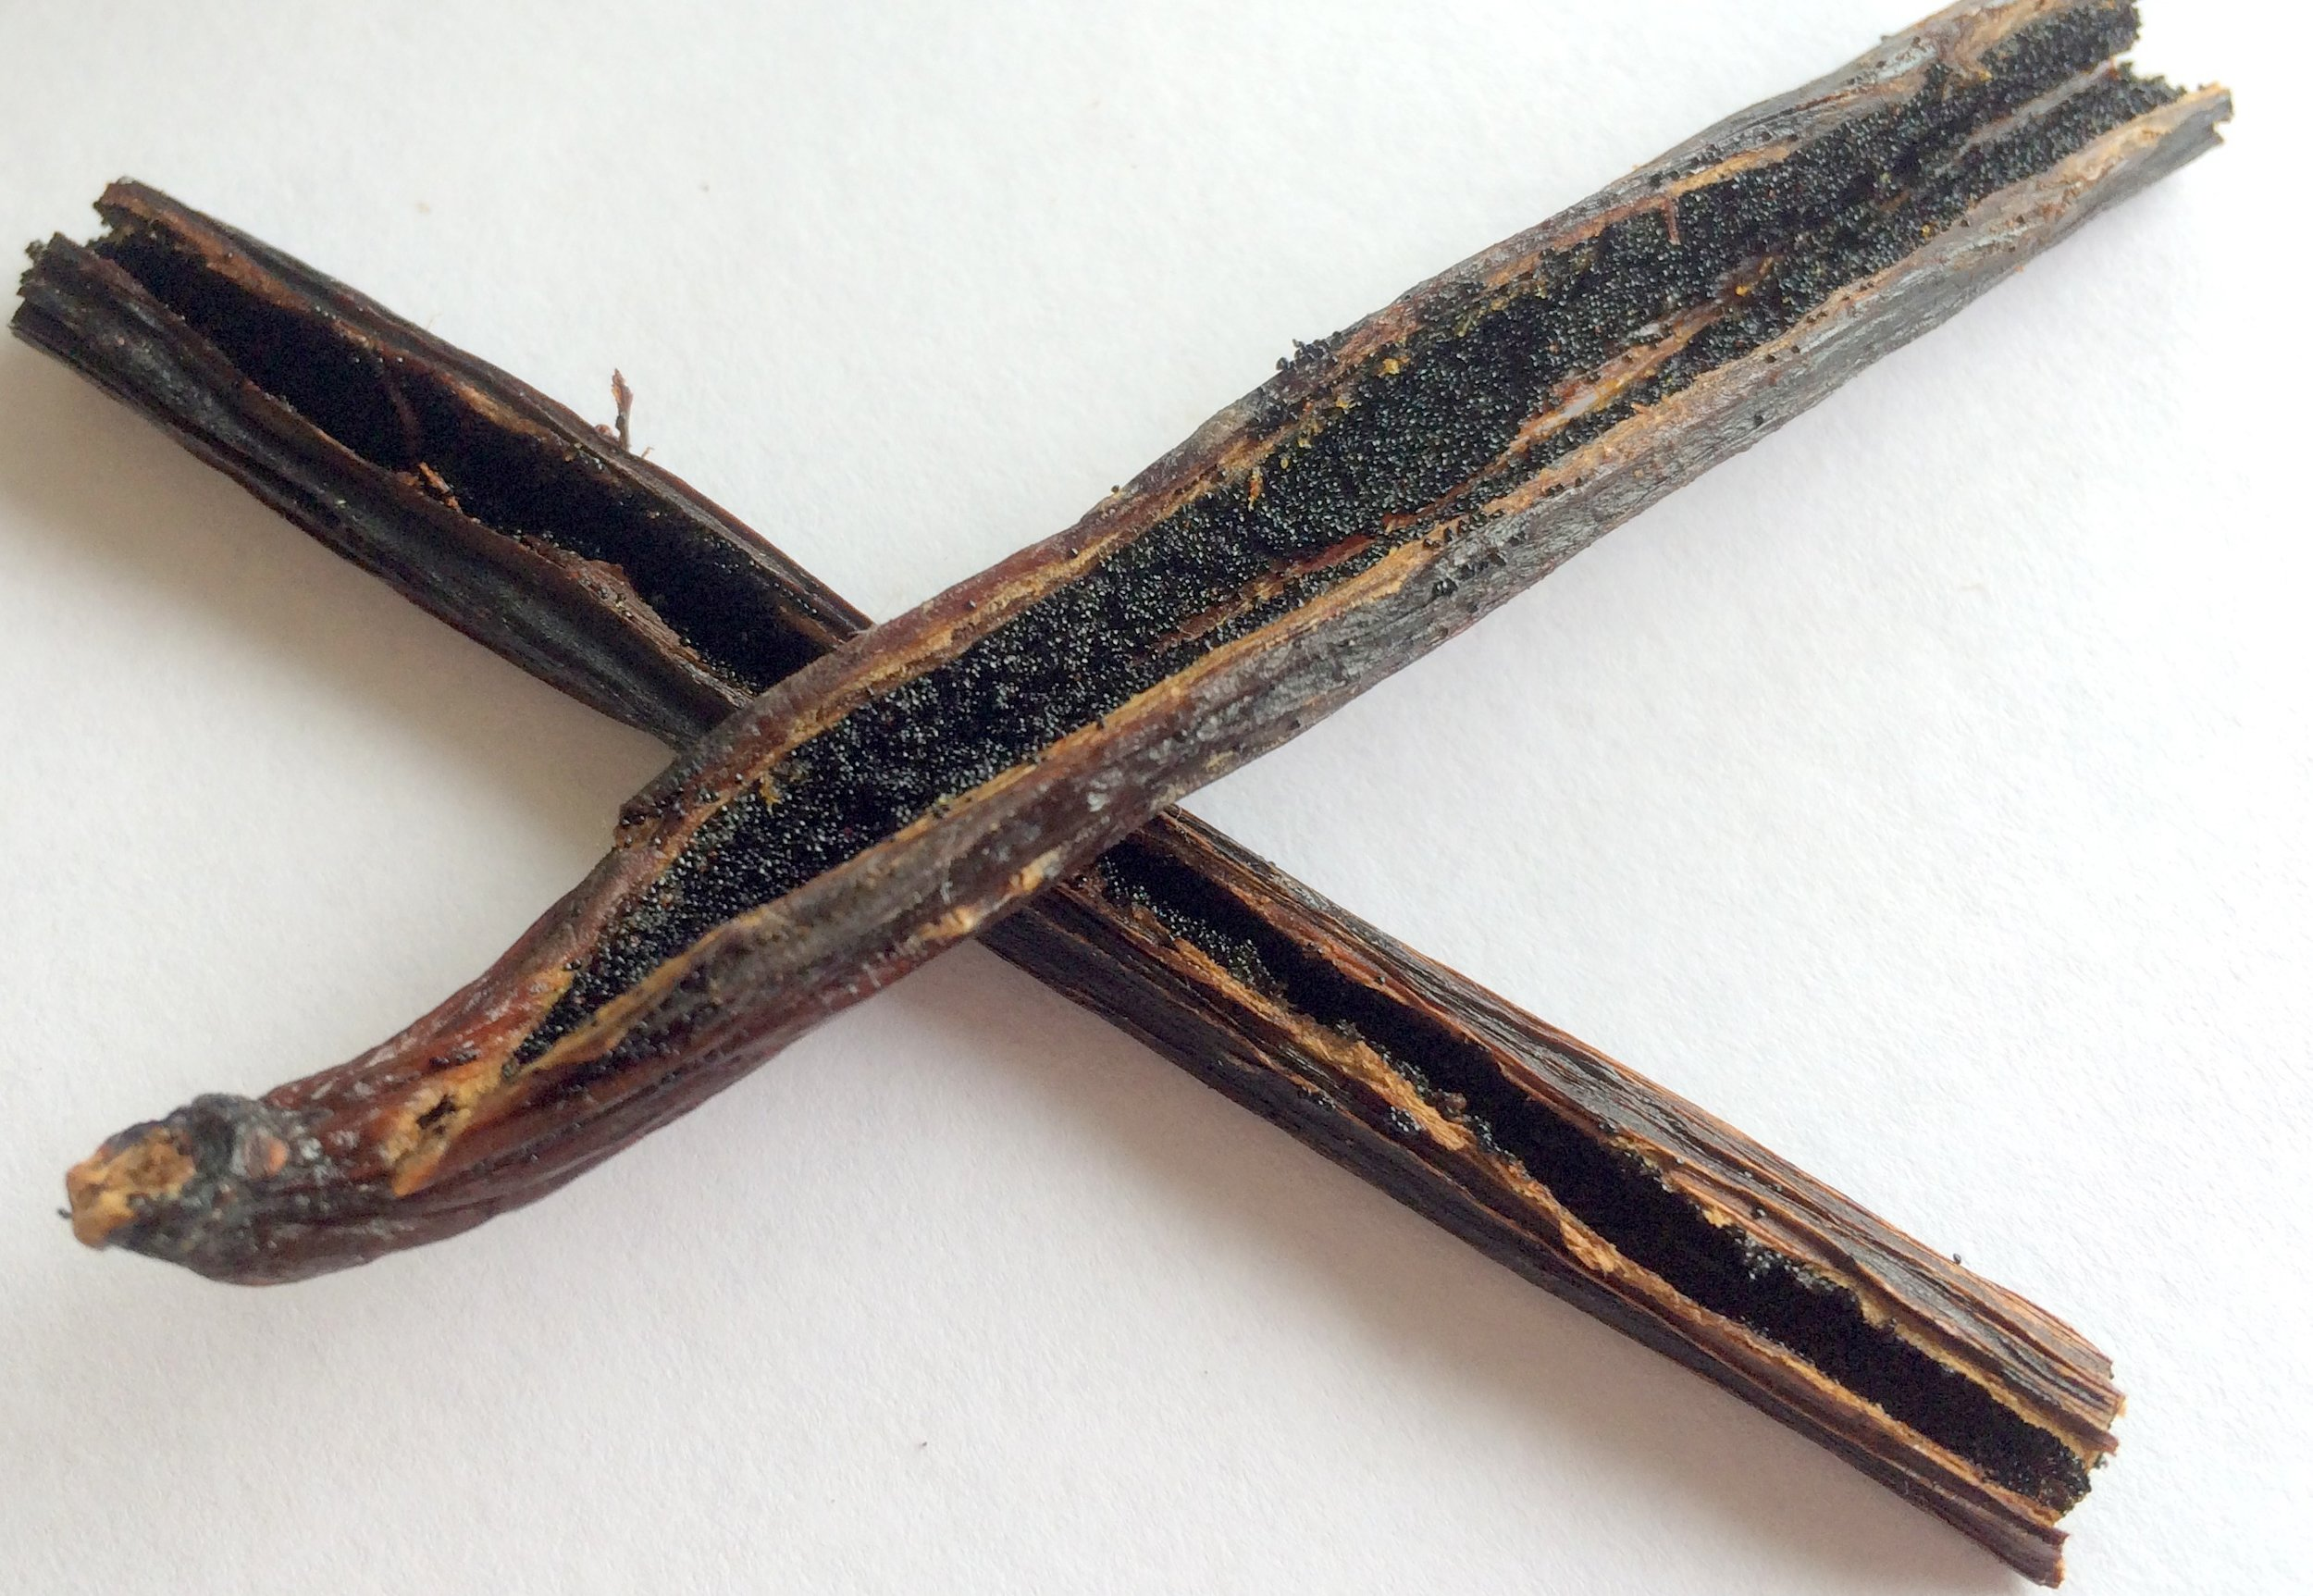 Sliced open vanilla bean